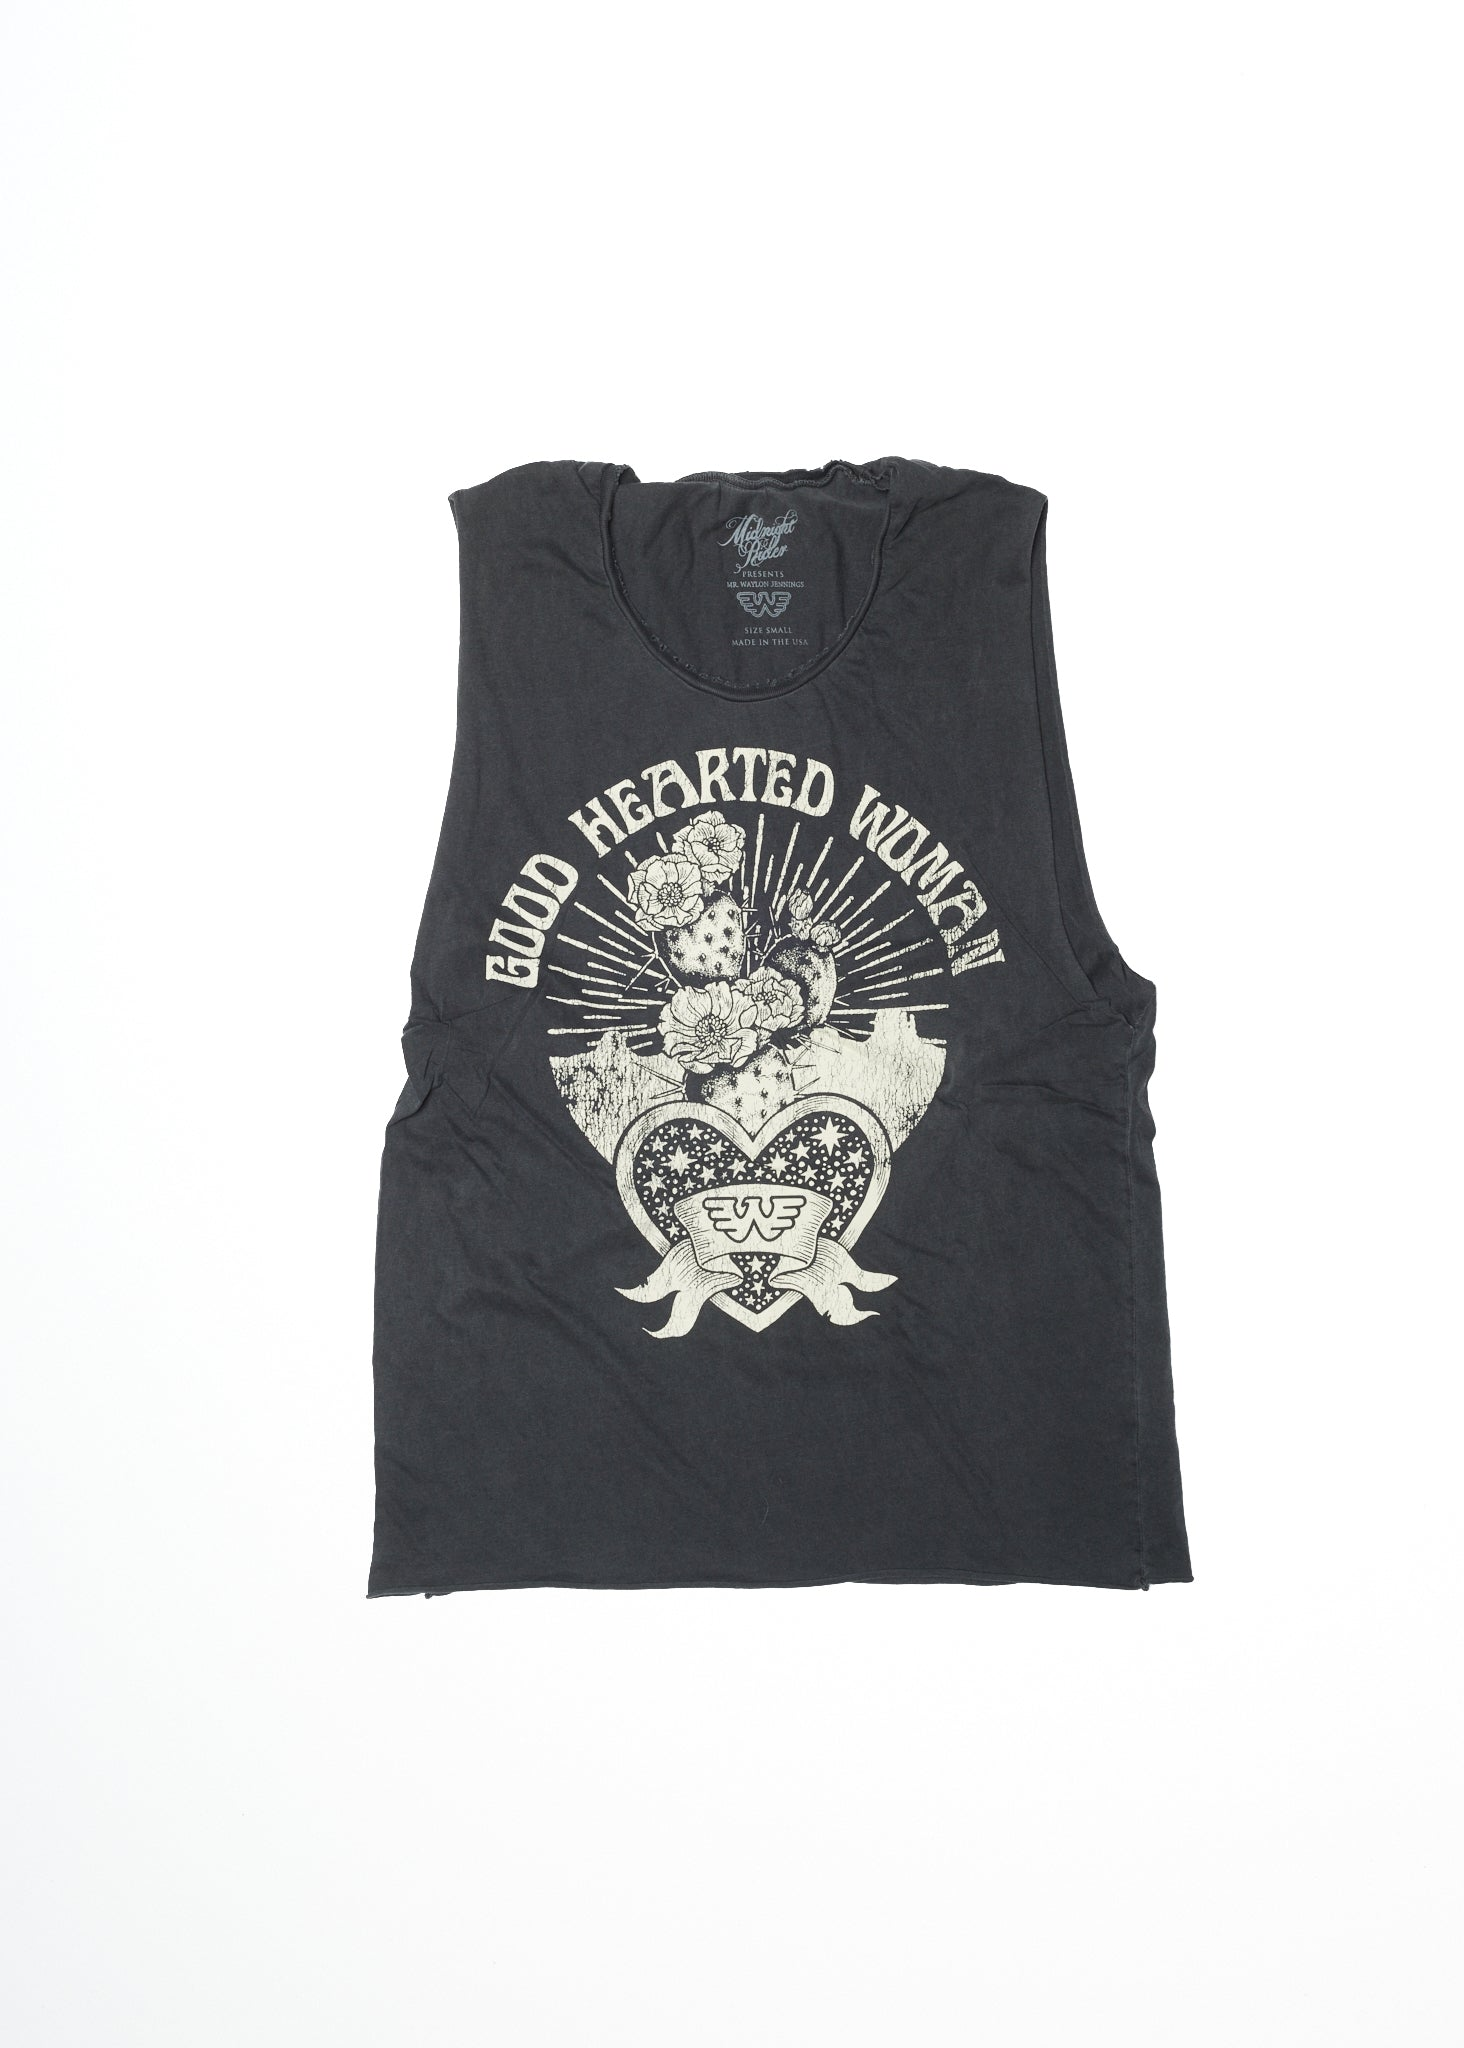 Good Hearted Woman - Vintage Black Muscle Tee - Women's Muscle Tee - Midnight Rider